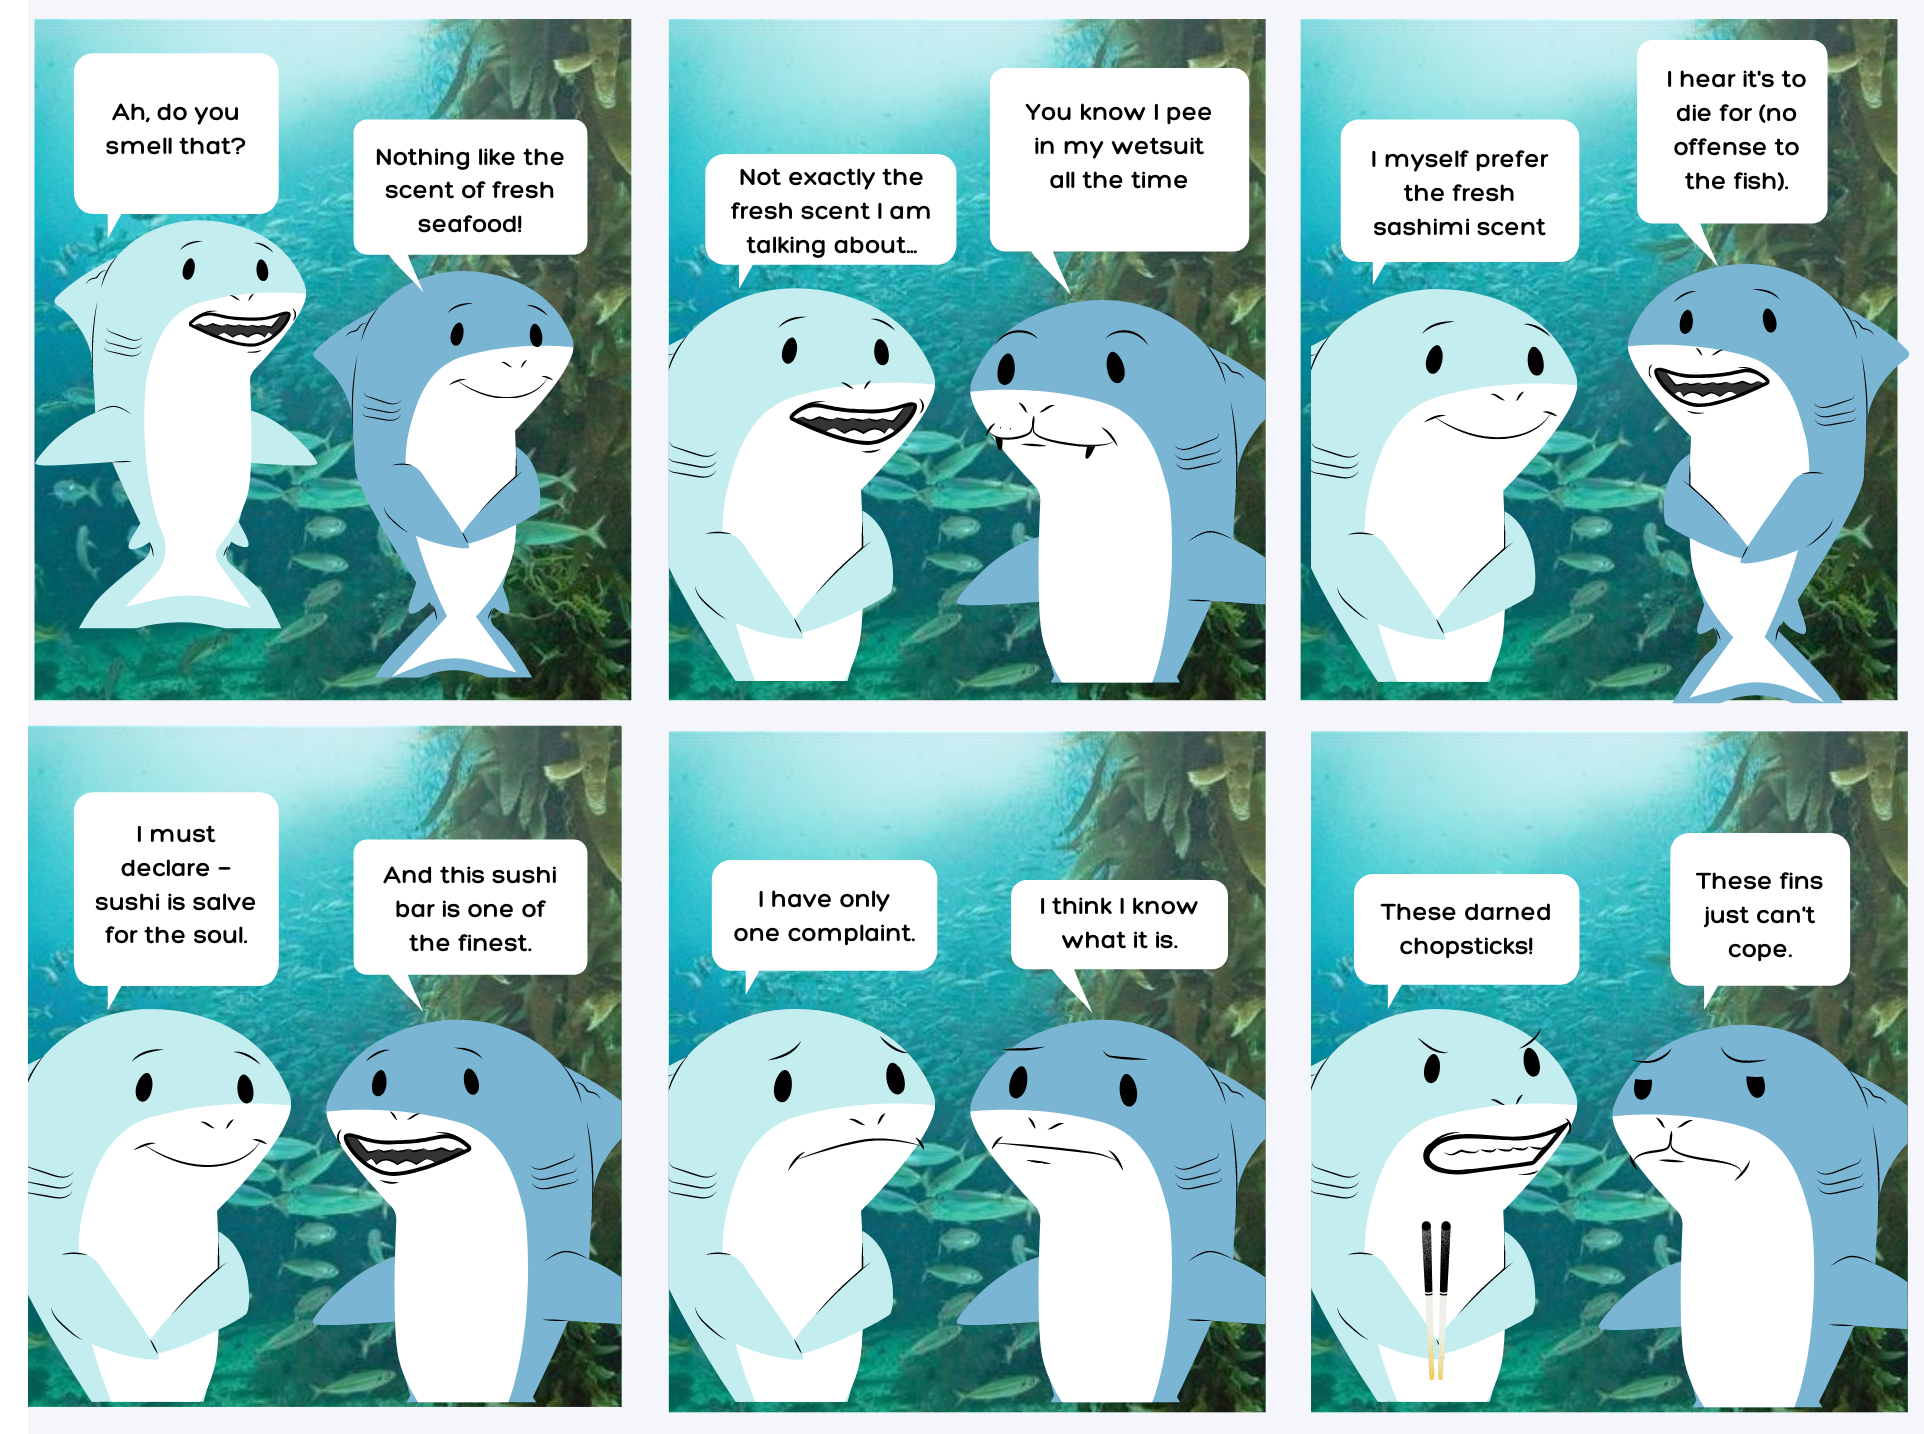 Shark Comics - To Pee or Not to Pee